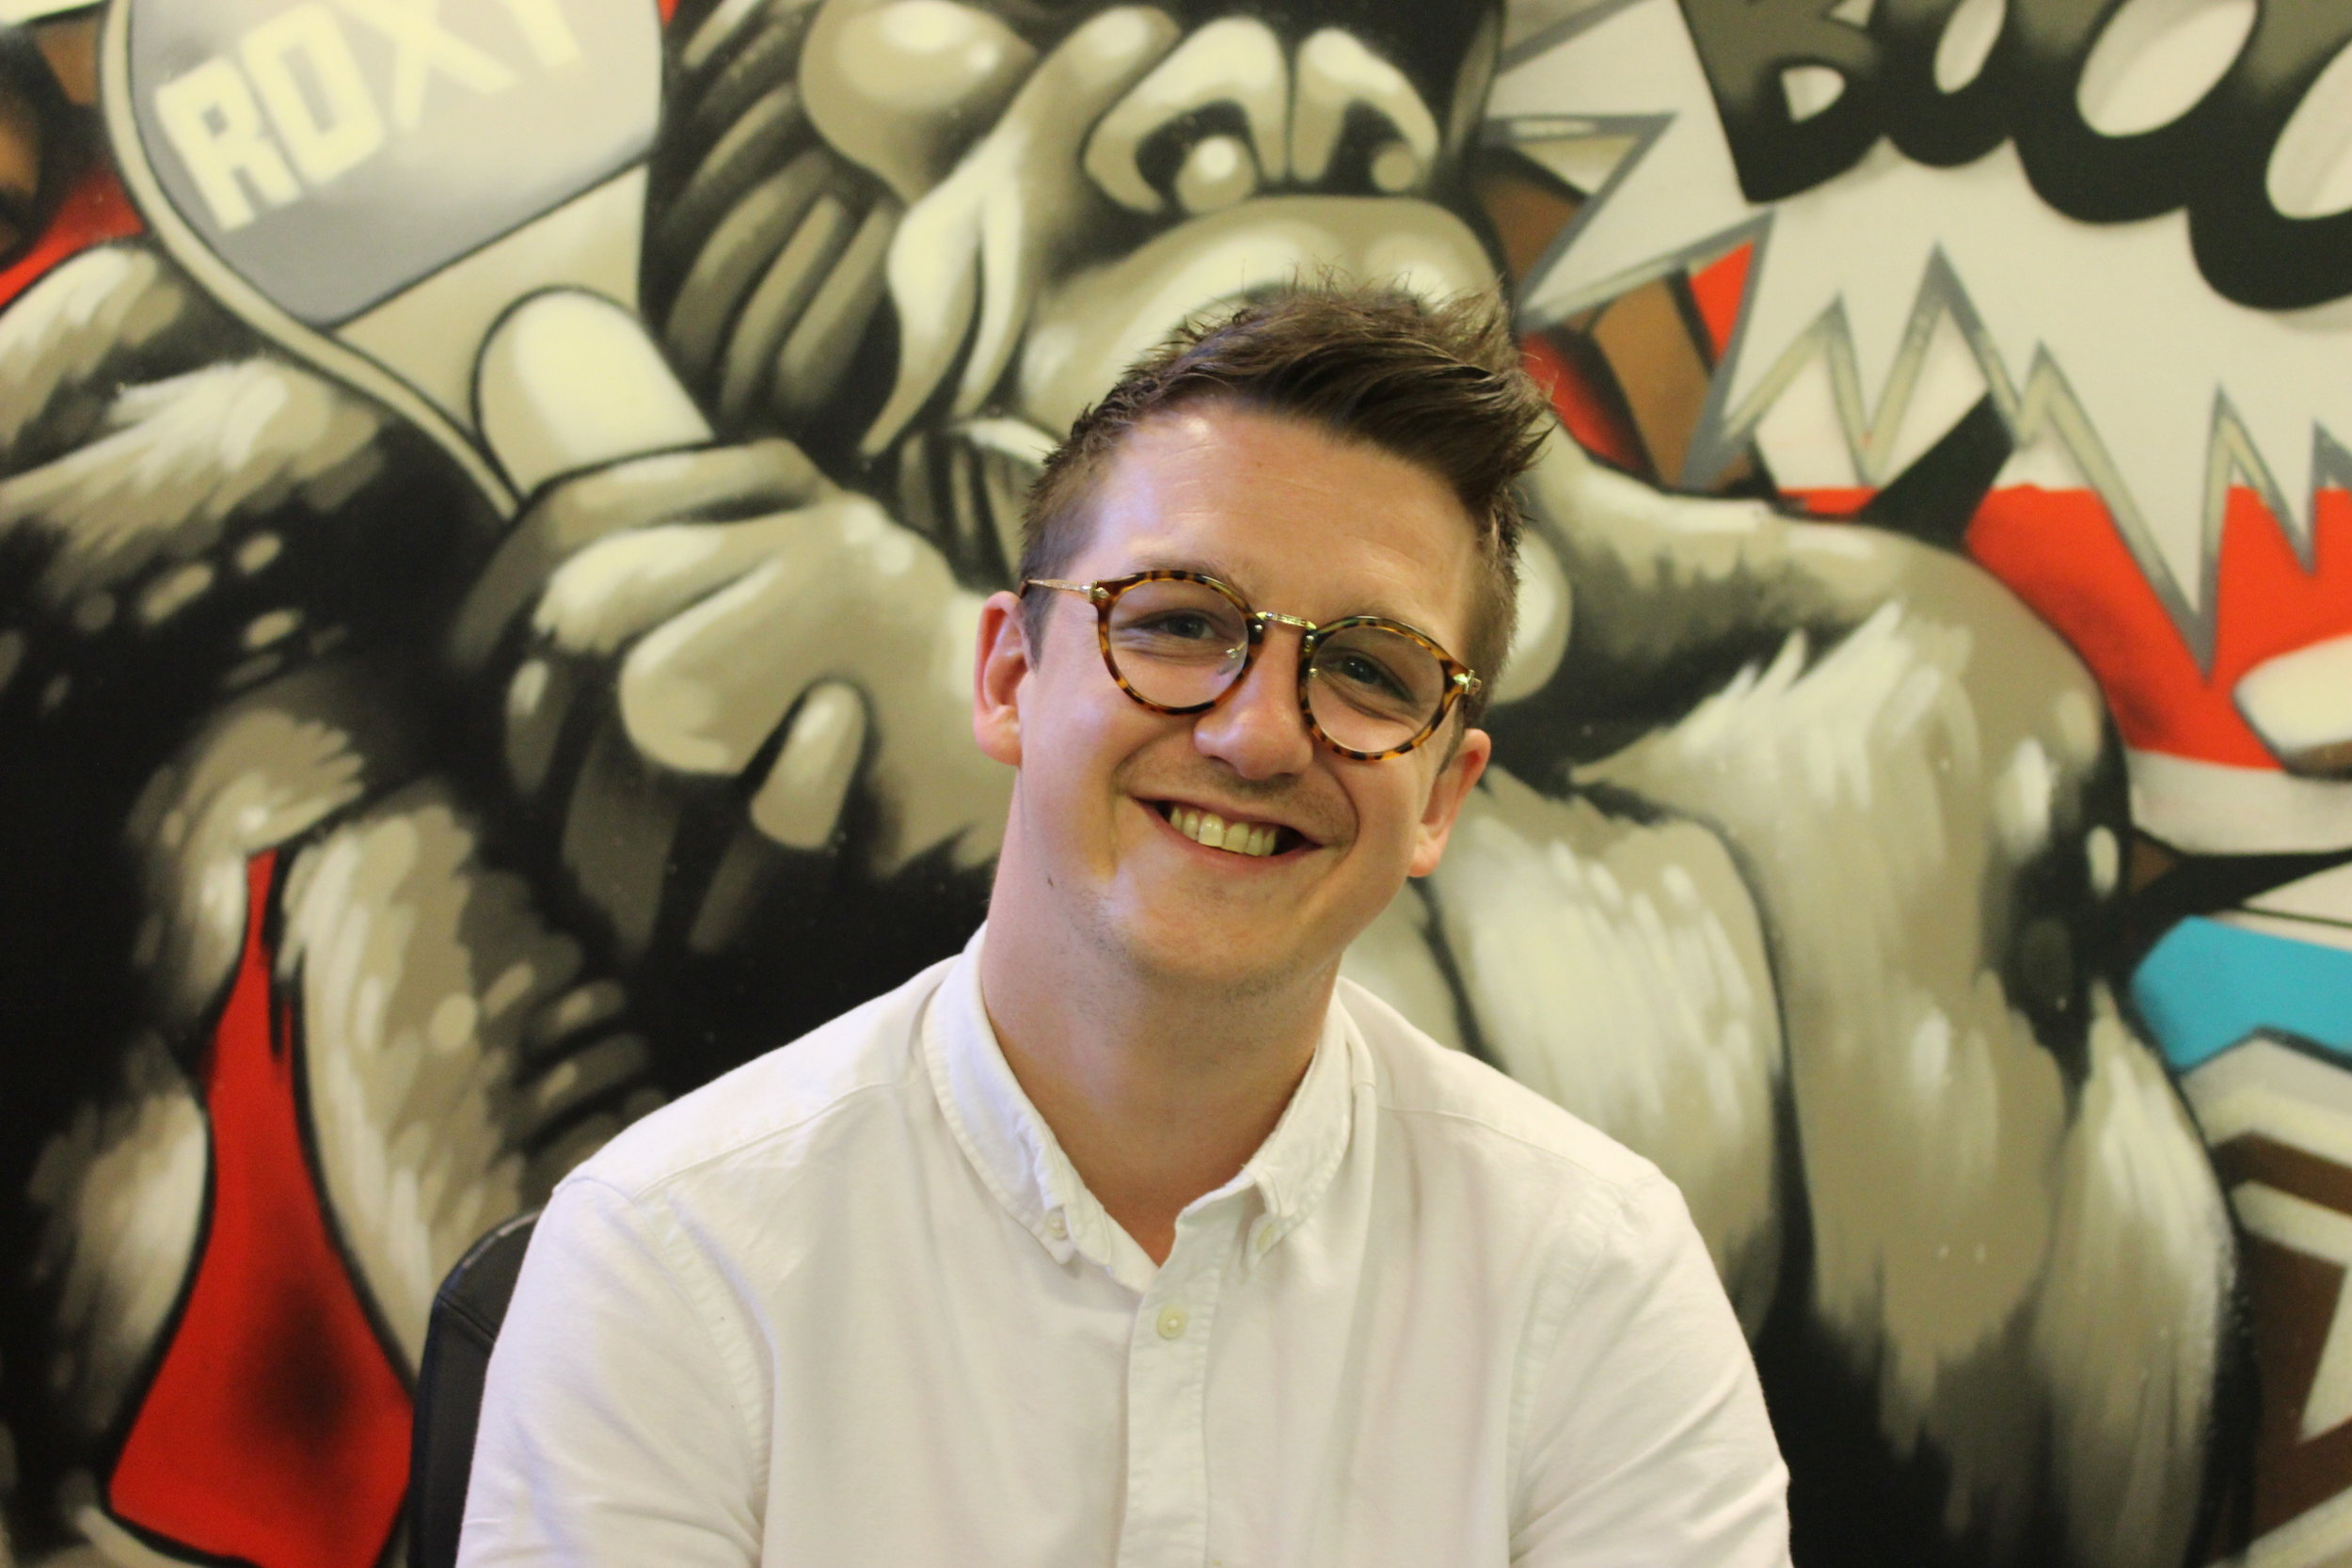 JOEL MITCHELL - BRAND DEVELOPMENT MANAGER - Joel is responsible for the branding and PR campaigns that drive the business. He is key in devising the wider marketing strategies and creating the buzz around new openings.